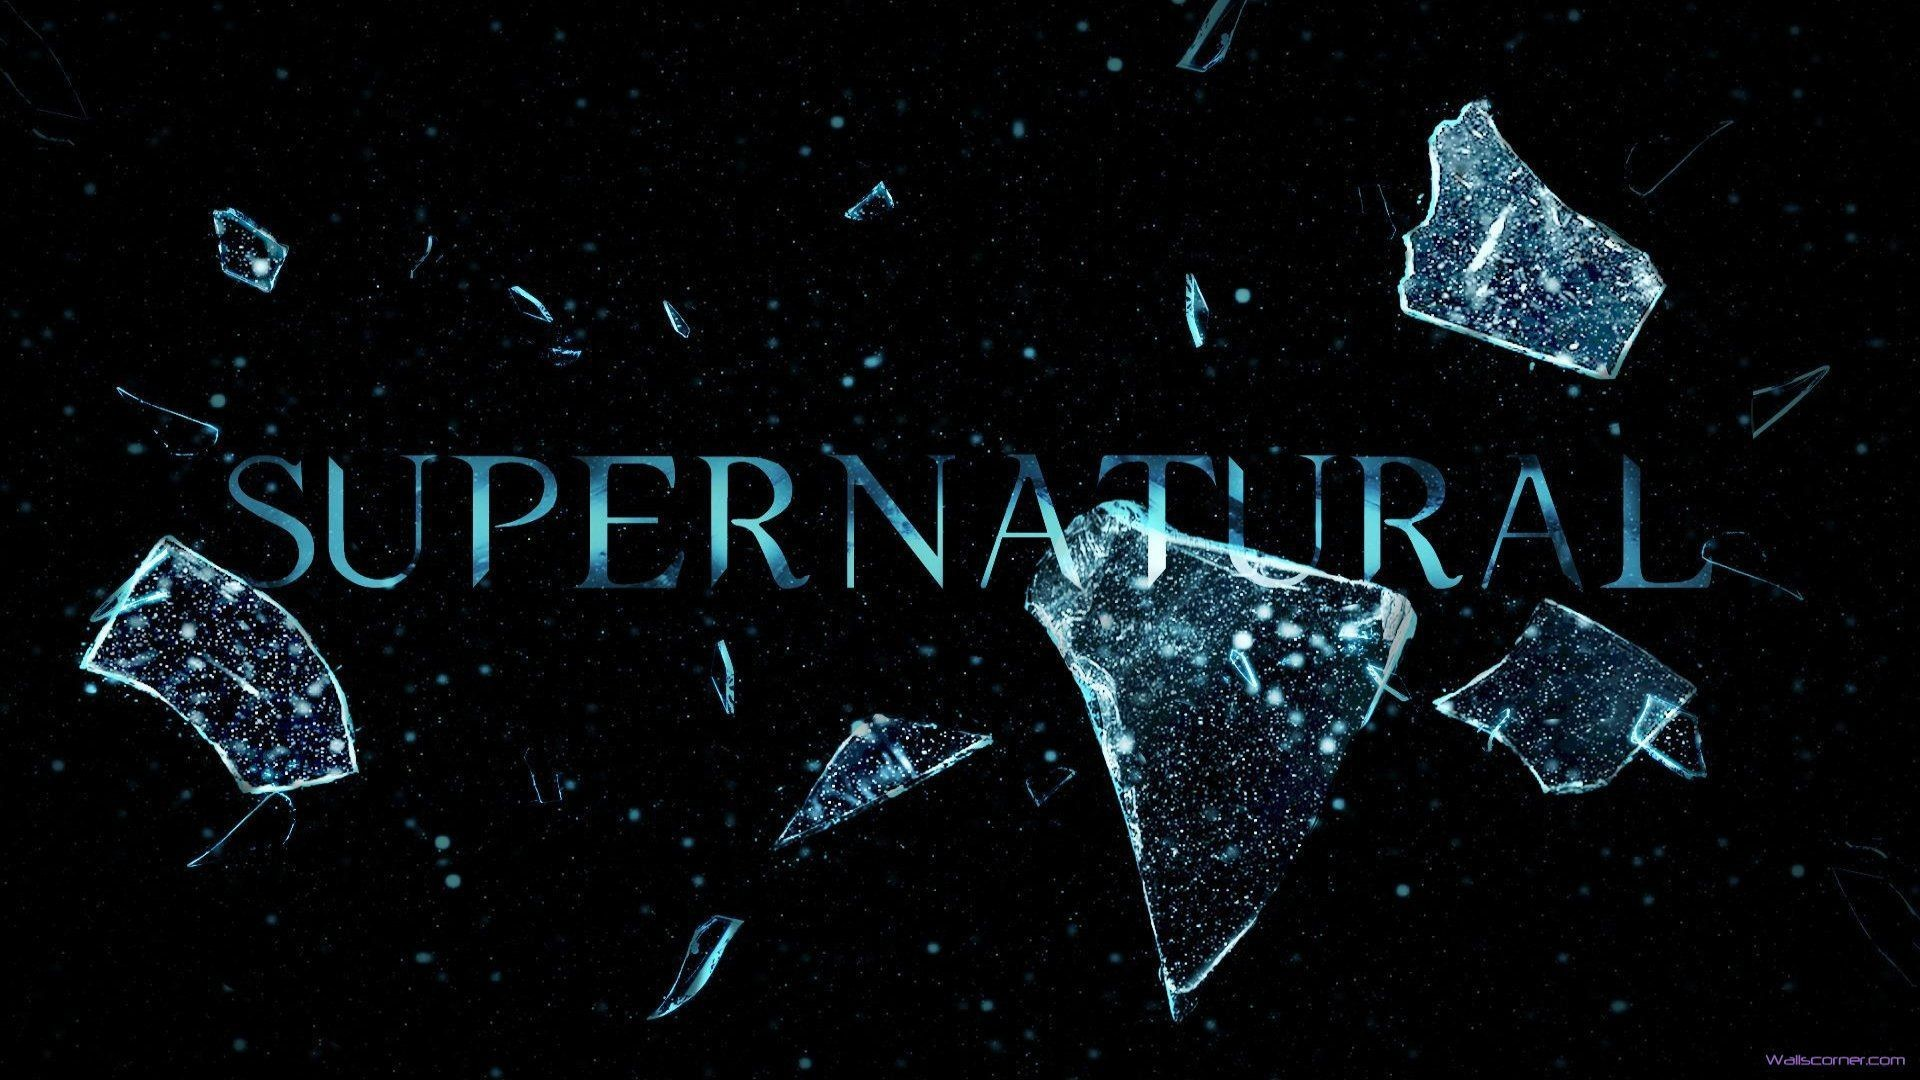 Res: 1920x1080, Supernatural HD wallpapers #22 - 1366x768 Wallpaper Download | All  Wallpapers | Pinterest